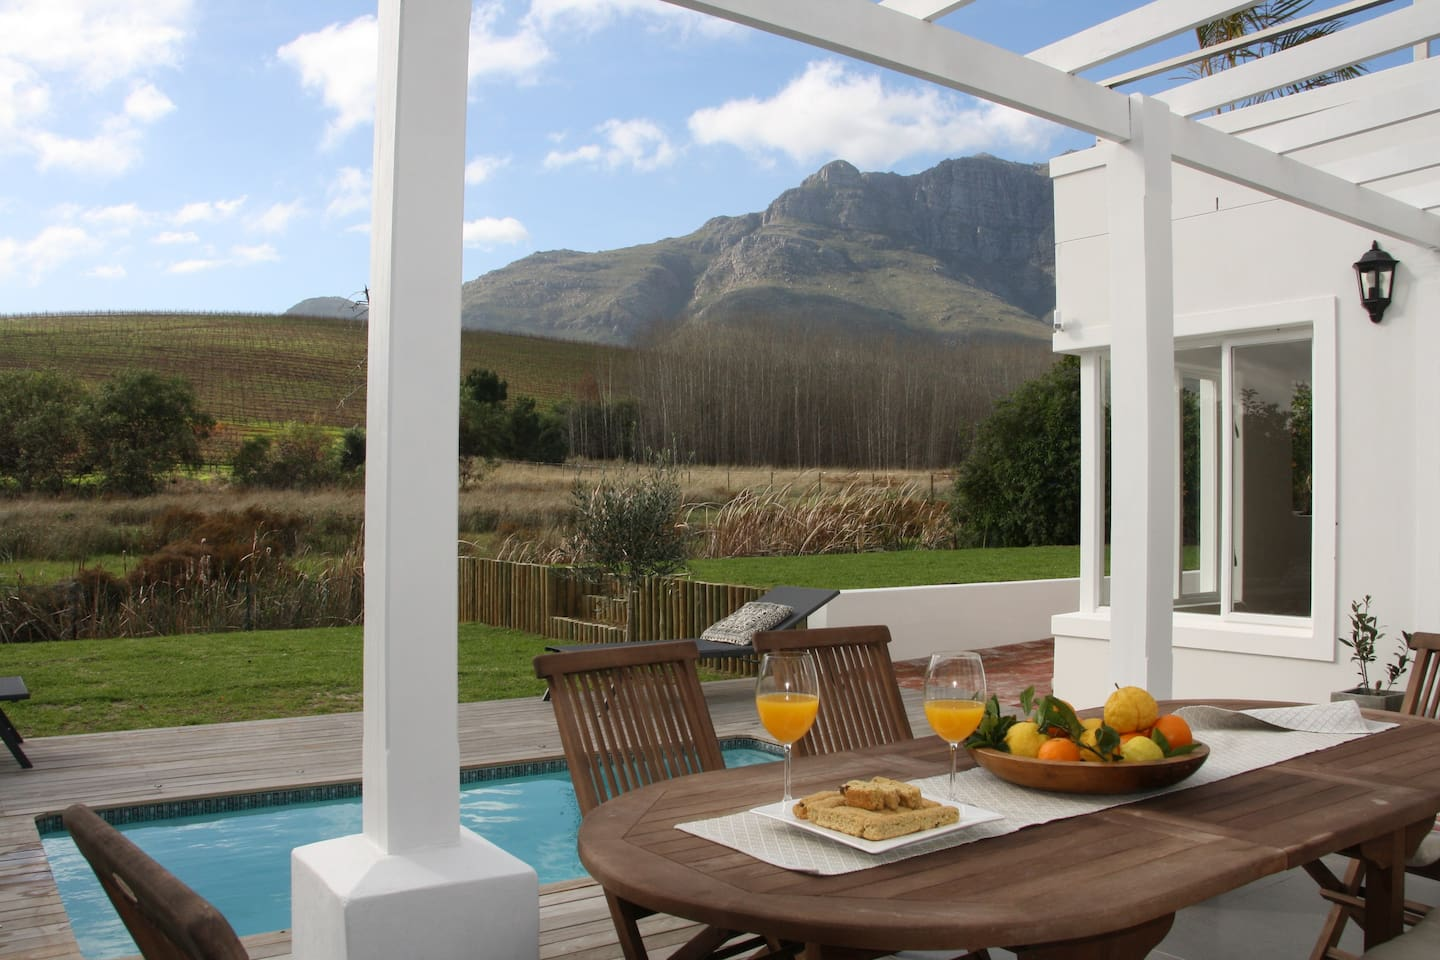 Patio overlooking splash pool, and spacious private garden with views of the Hottentot Holland Mountain Range